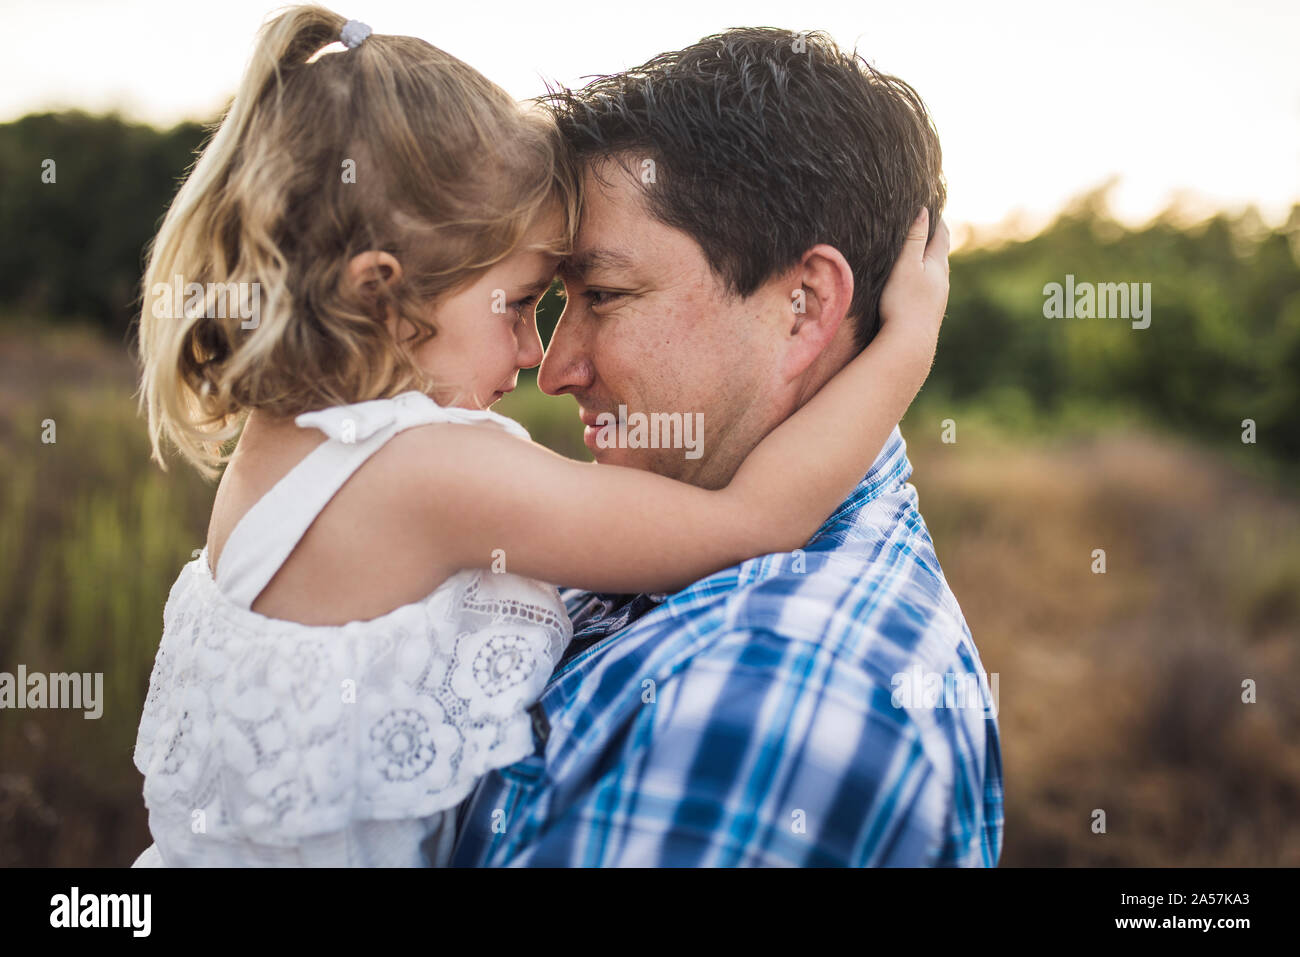 Young girl looking into dad's eyes while touching foreheads Stock Photo